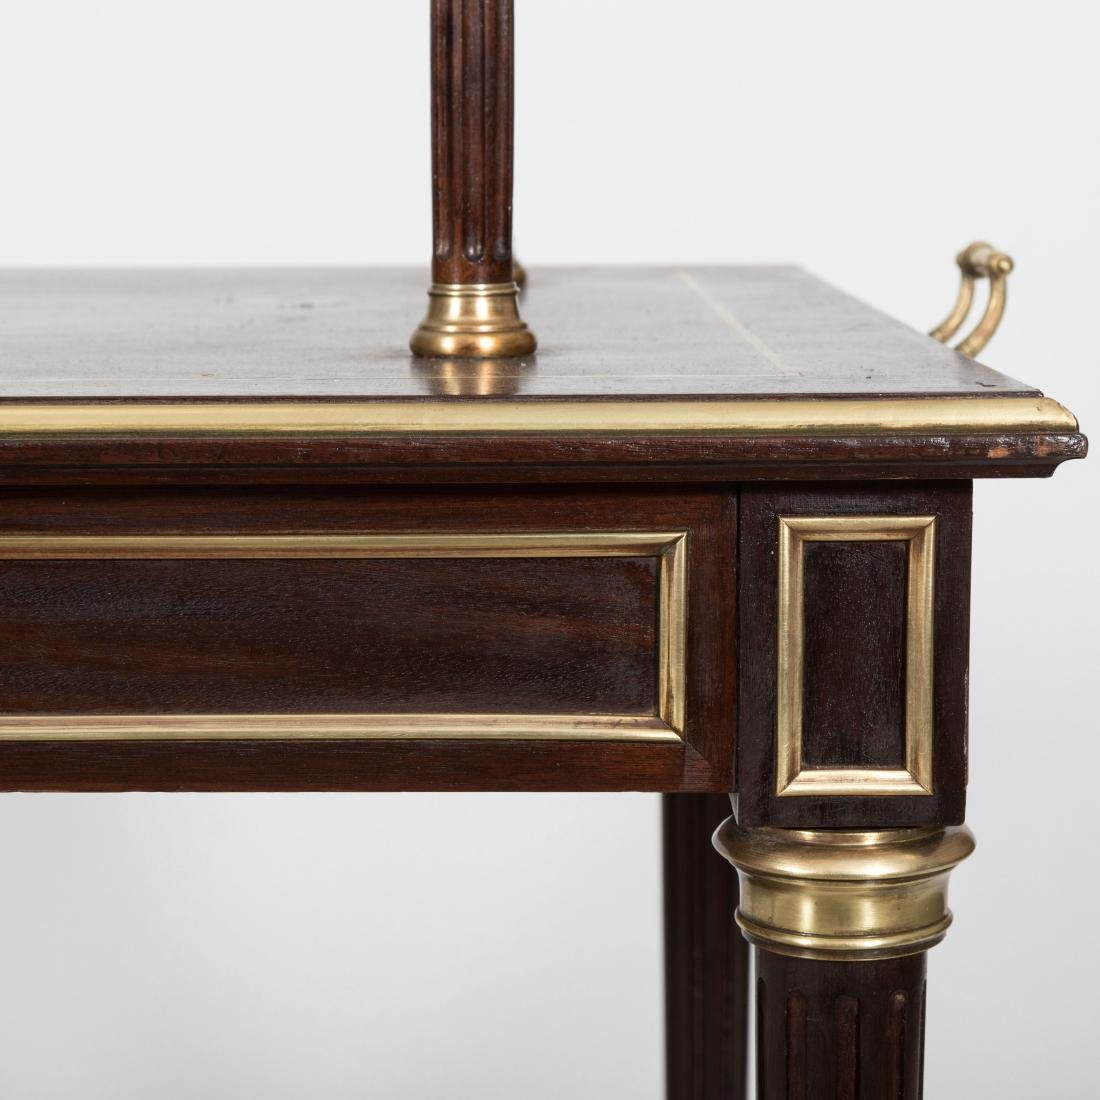 Two Tier French Server with Brass Trim - 5